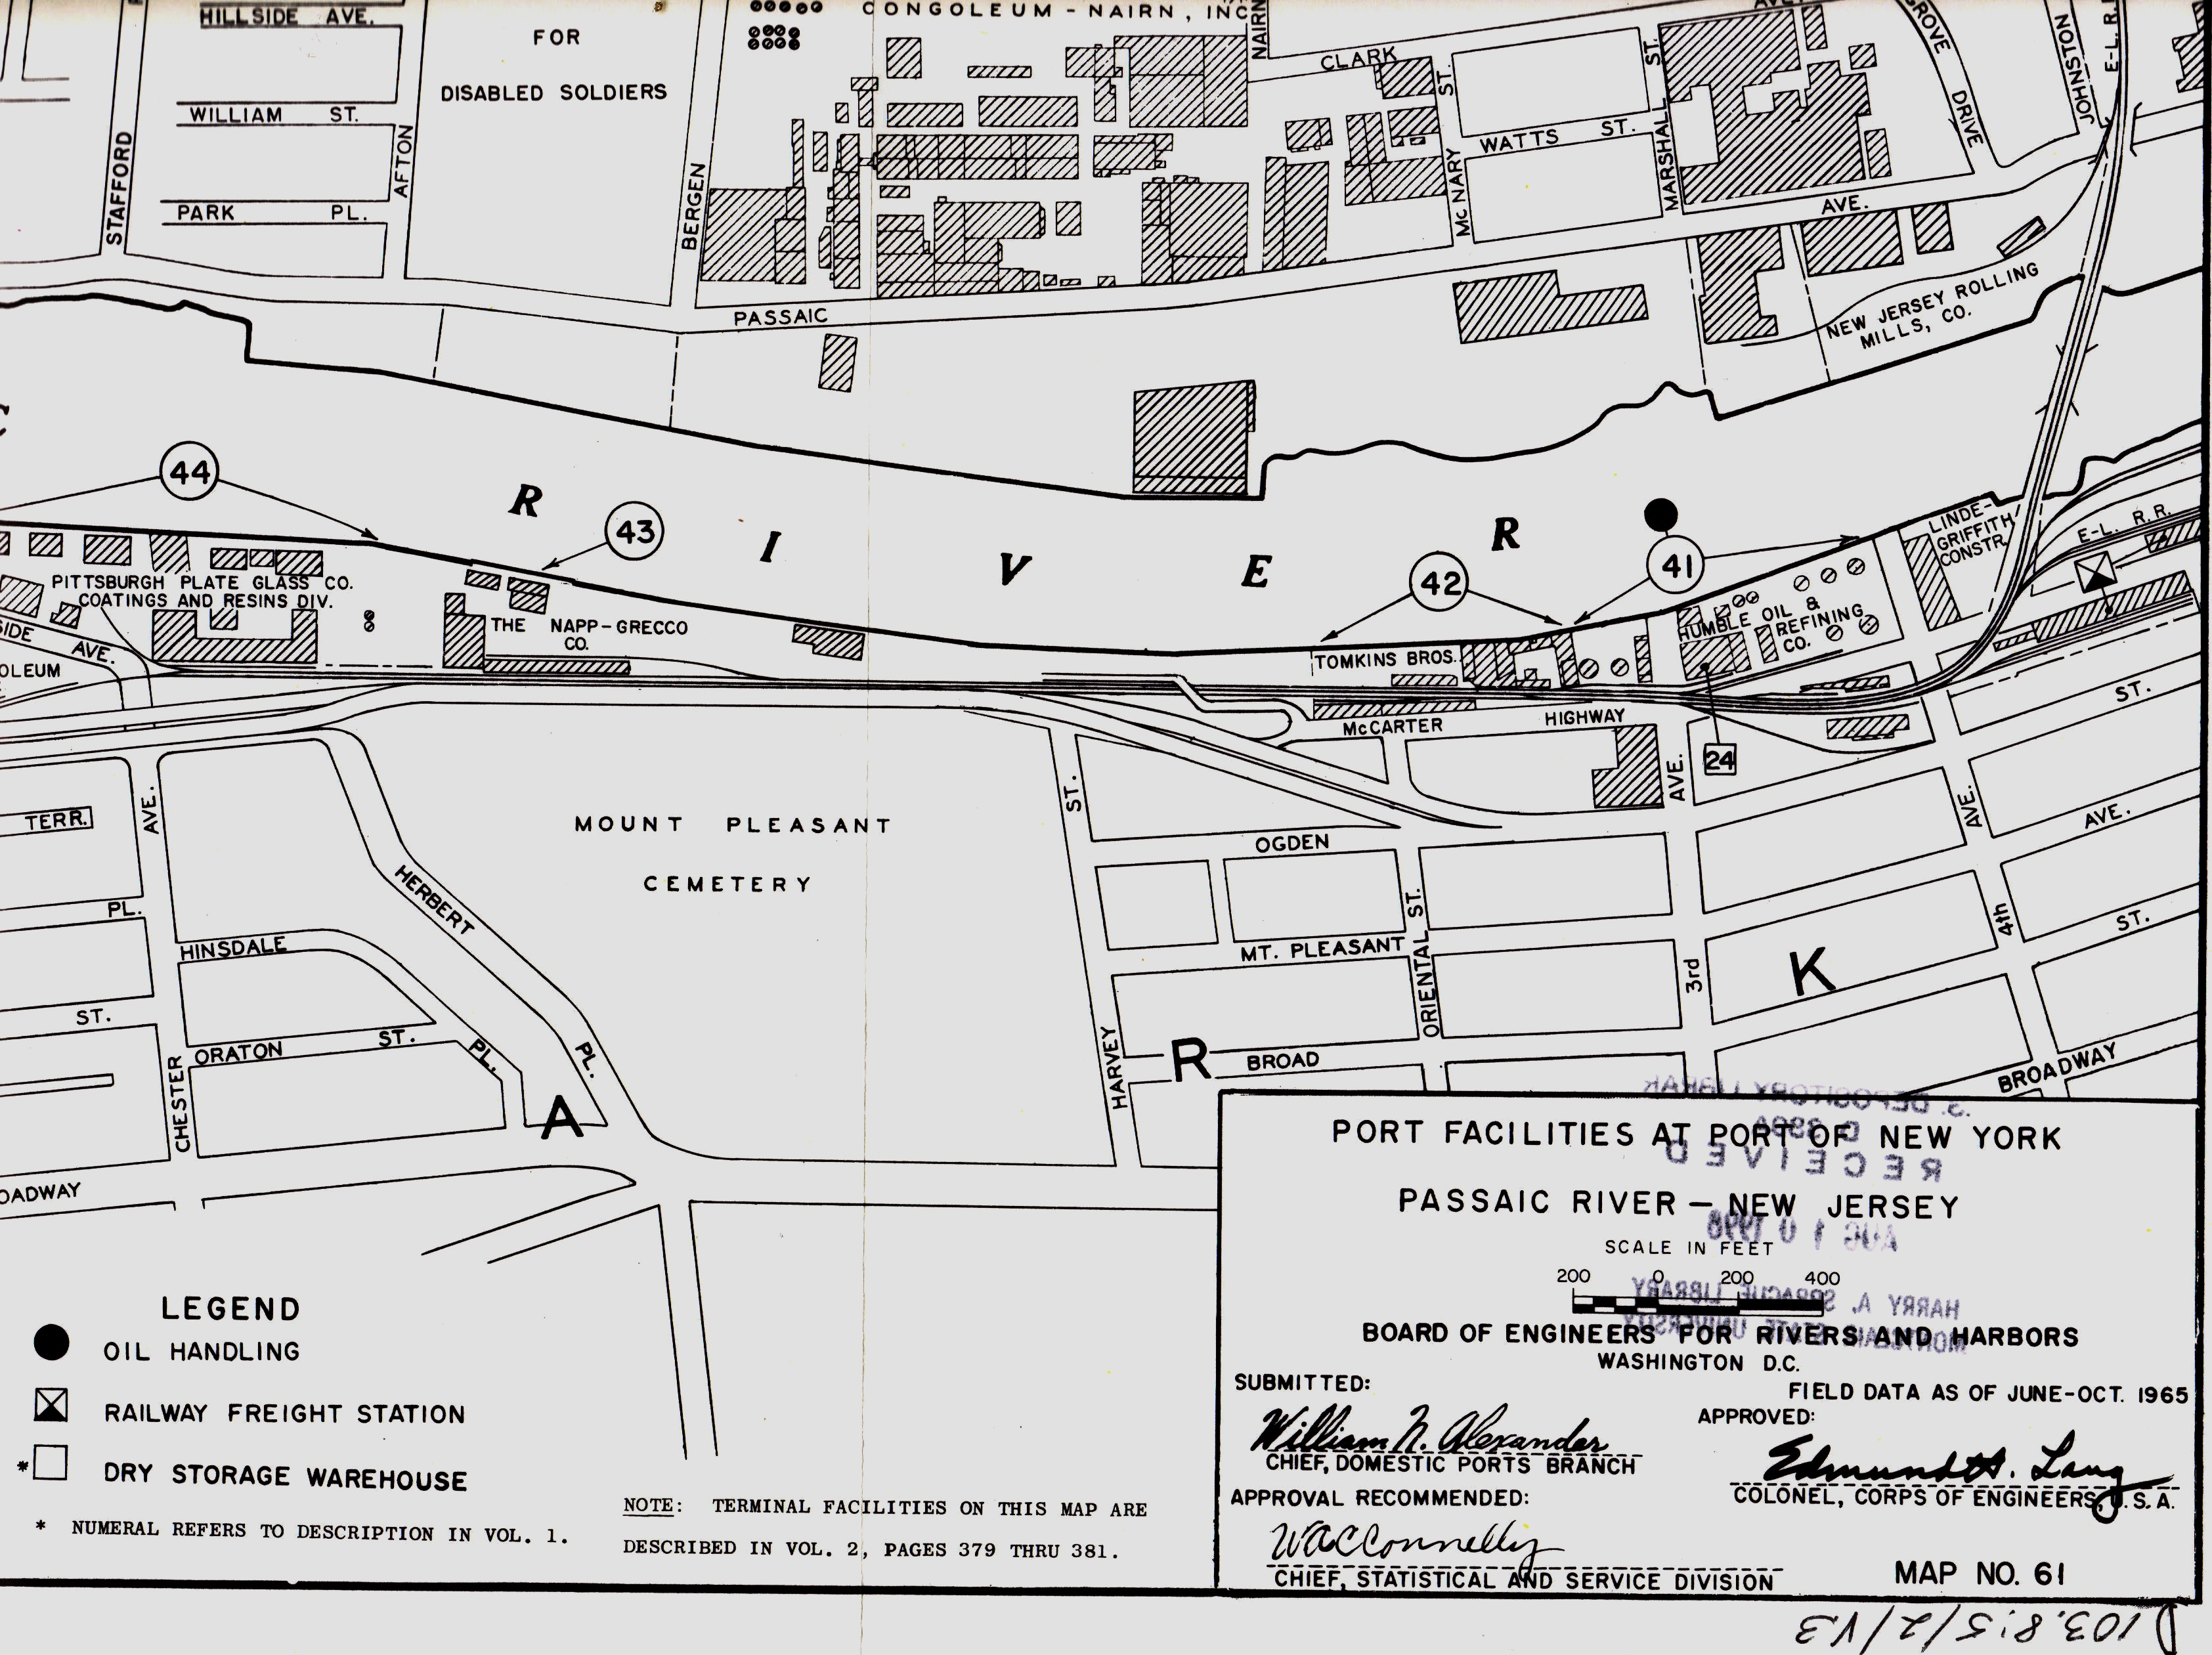 1965 Map of the Passaic River at Kearny